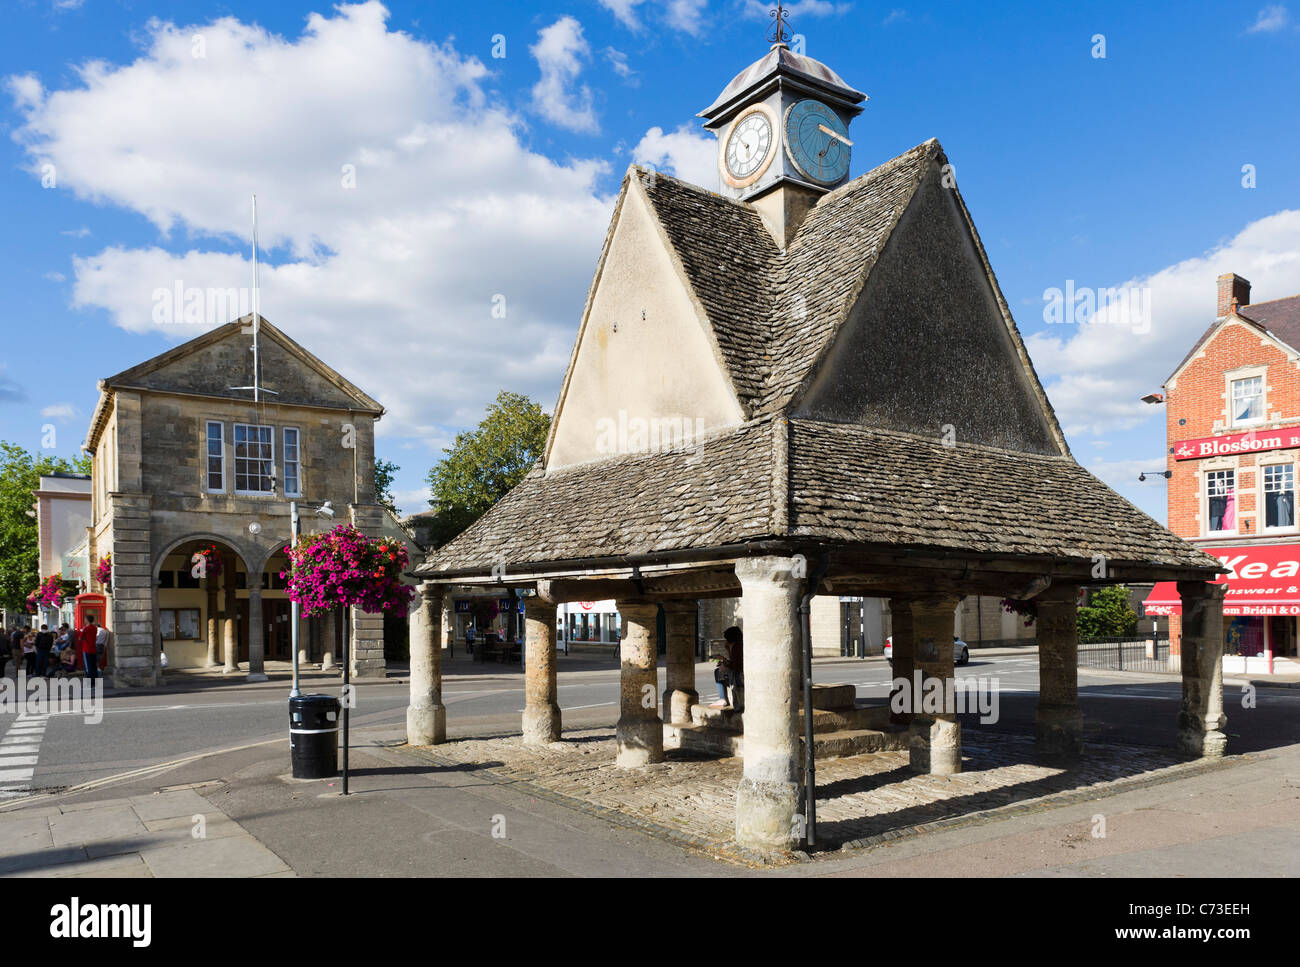 The Buttercross in Market Square in the centre of Witney, Oxfordshire, England, UK - Stock Image